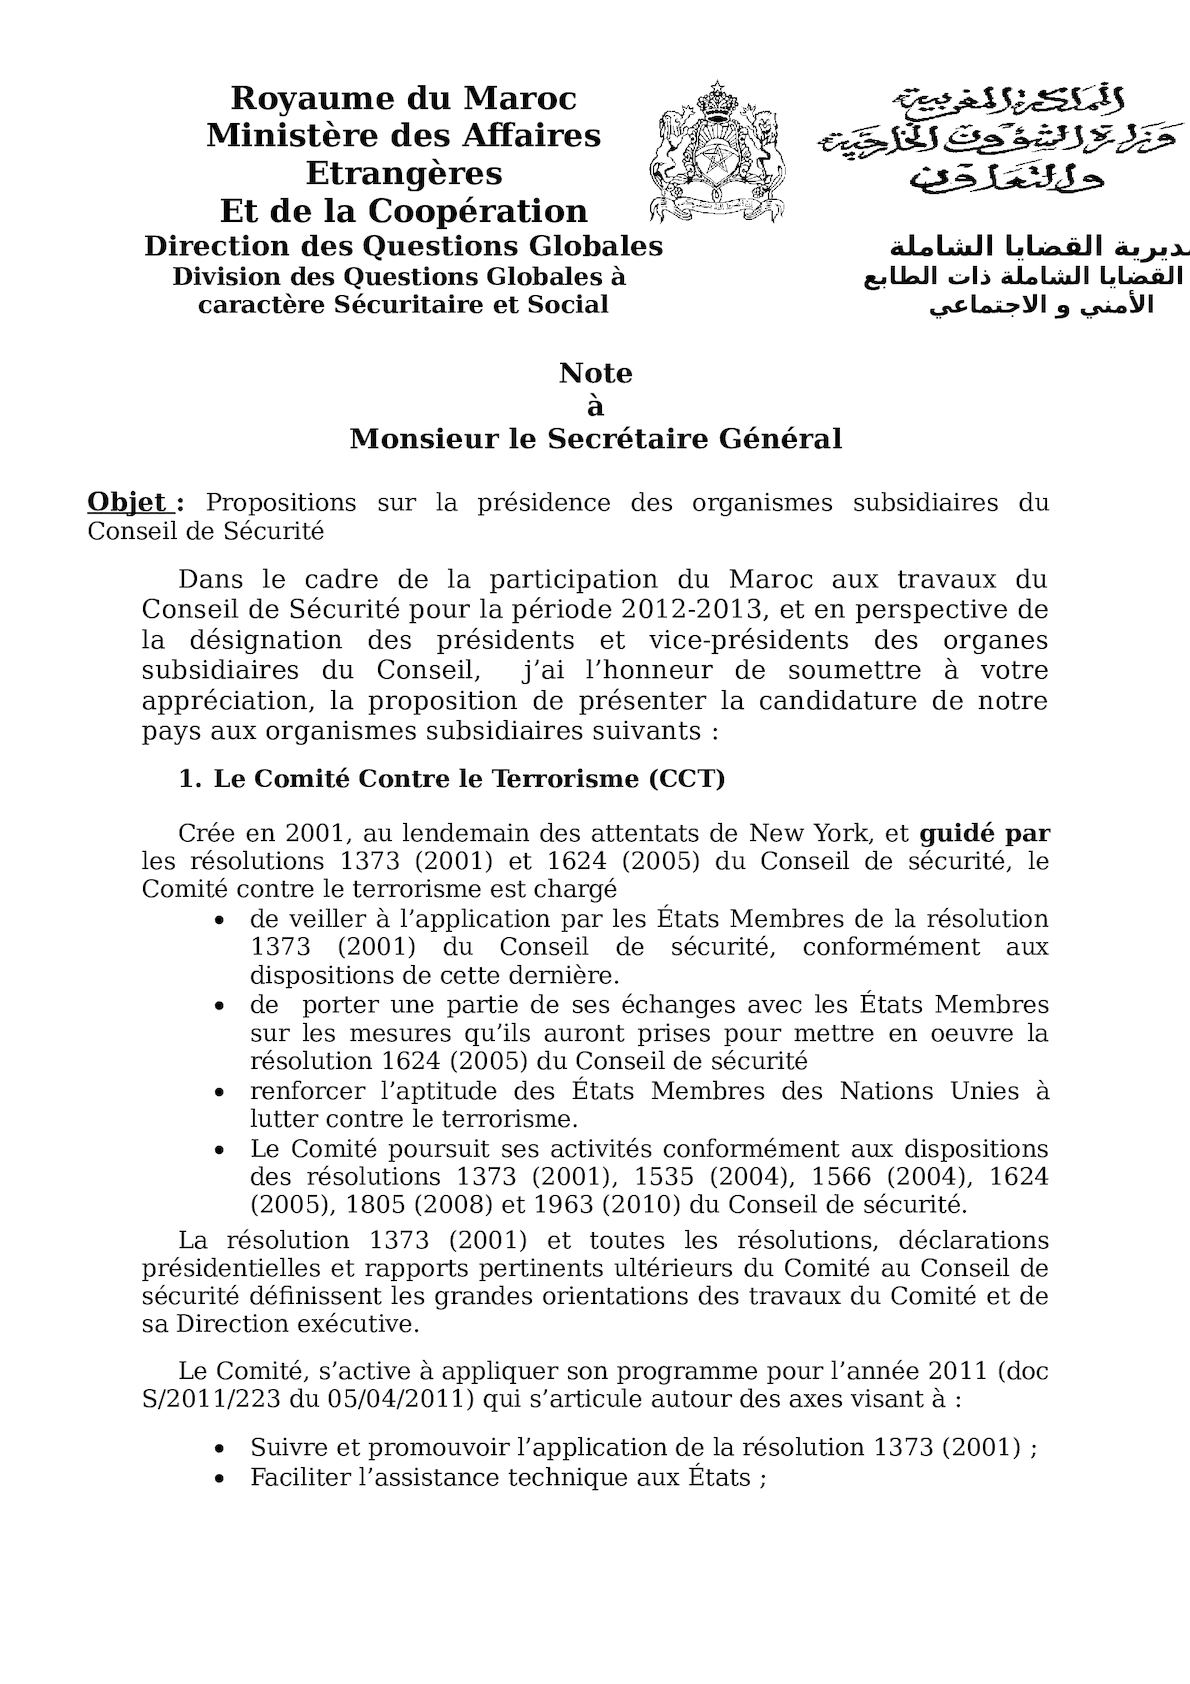 Candidatures Organes Subsidiaires Cs(2)